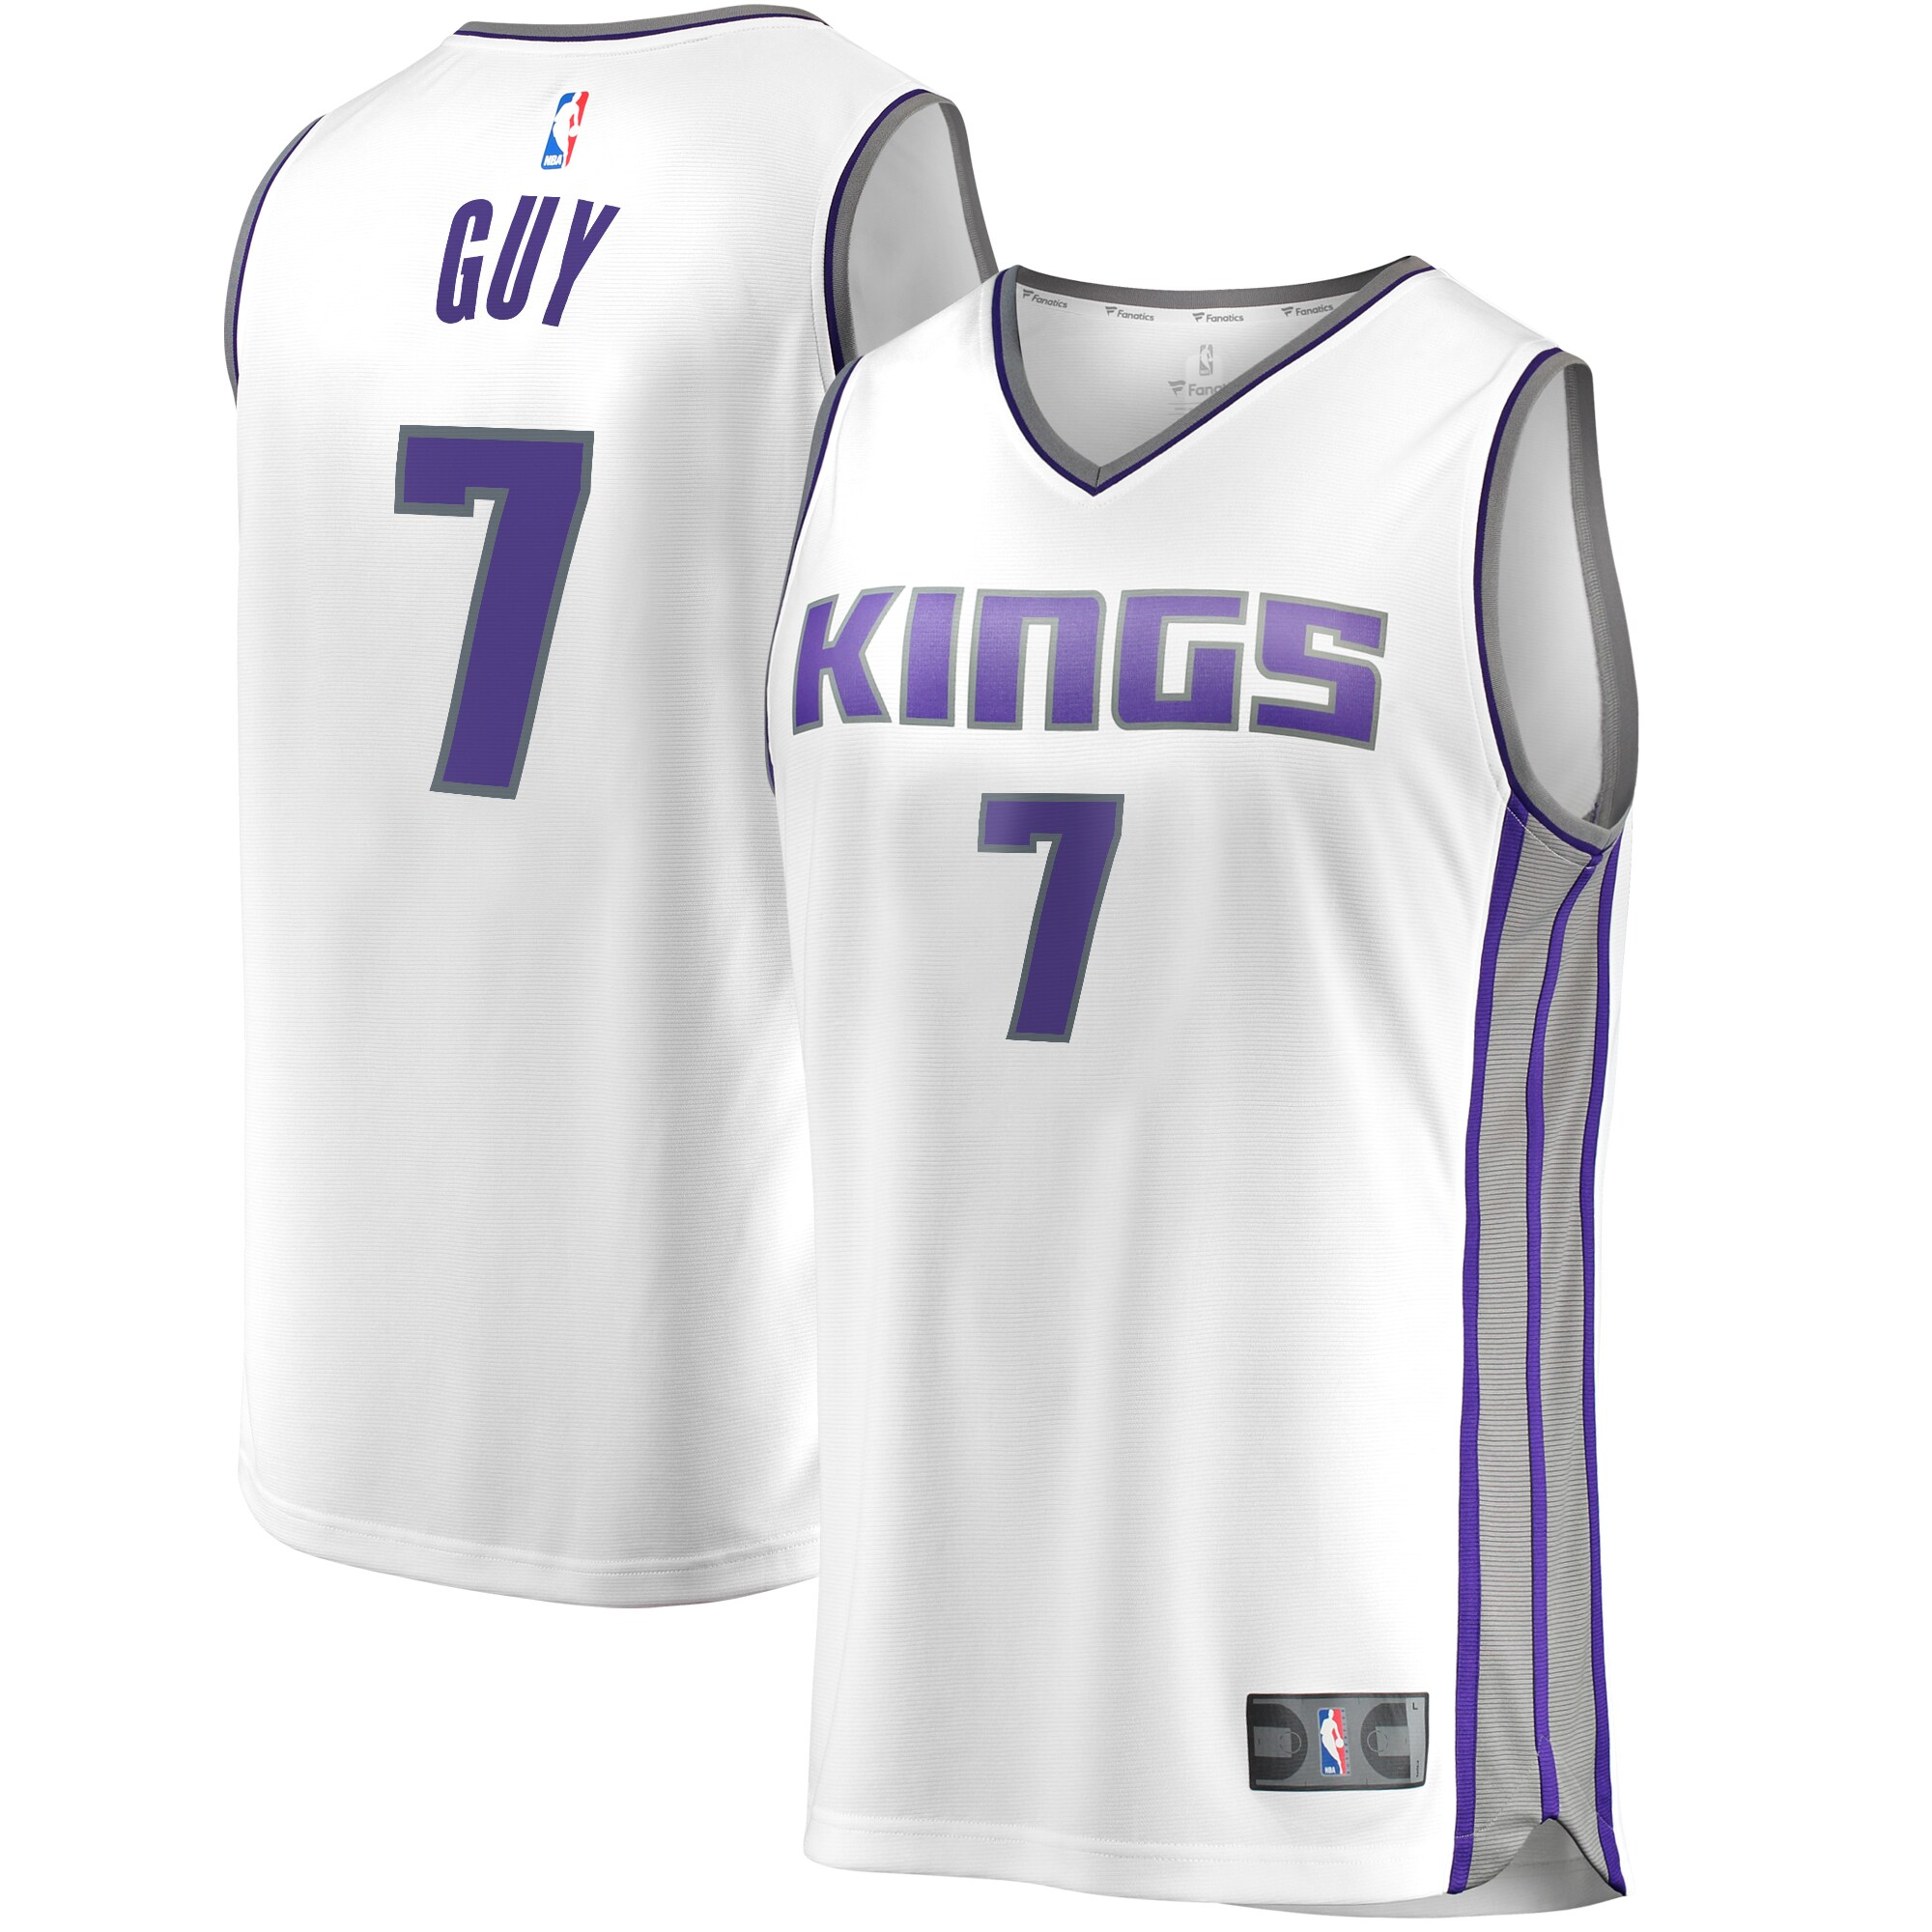 Kyle Guy Sacramento Kings Fanatics Branded Fast Break Replica Player Jersey White - Association Edition